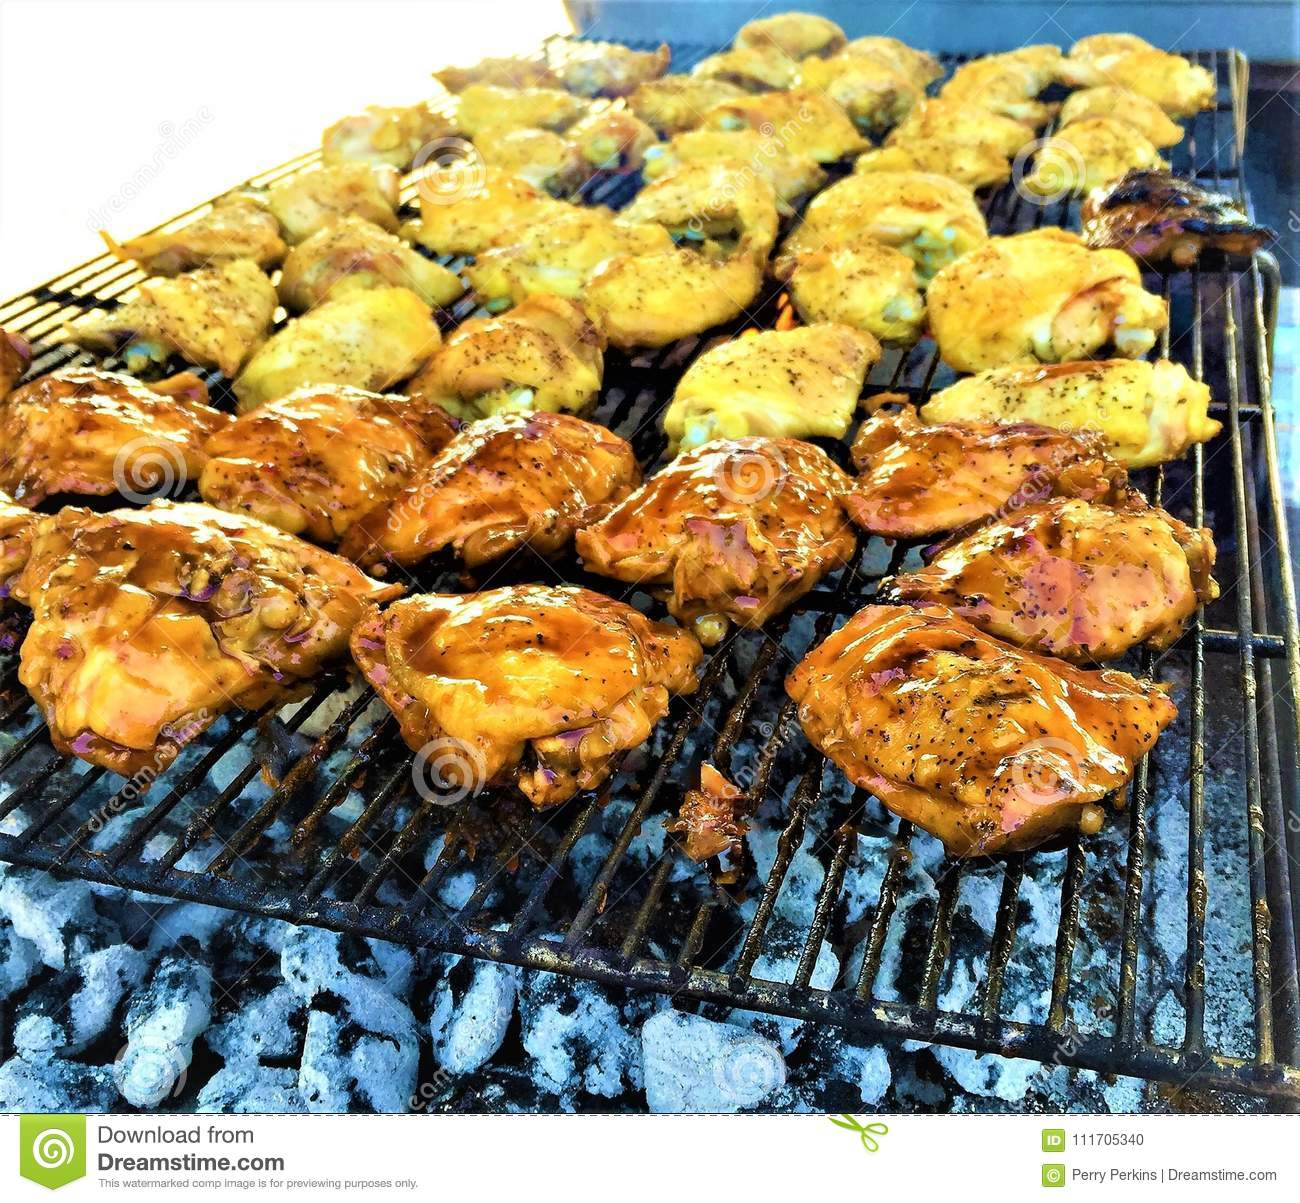 BBQ Grilled Chicken Thighs Over Charcoal Stock Photo